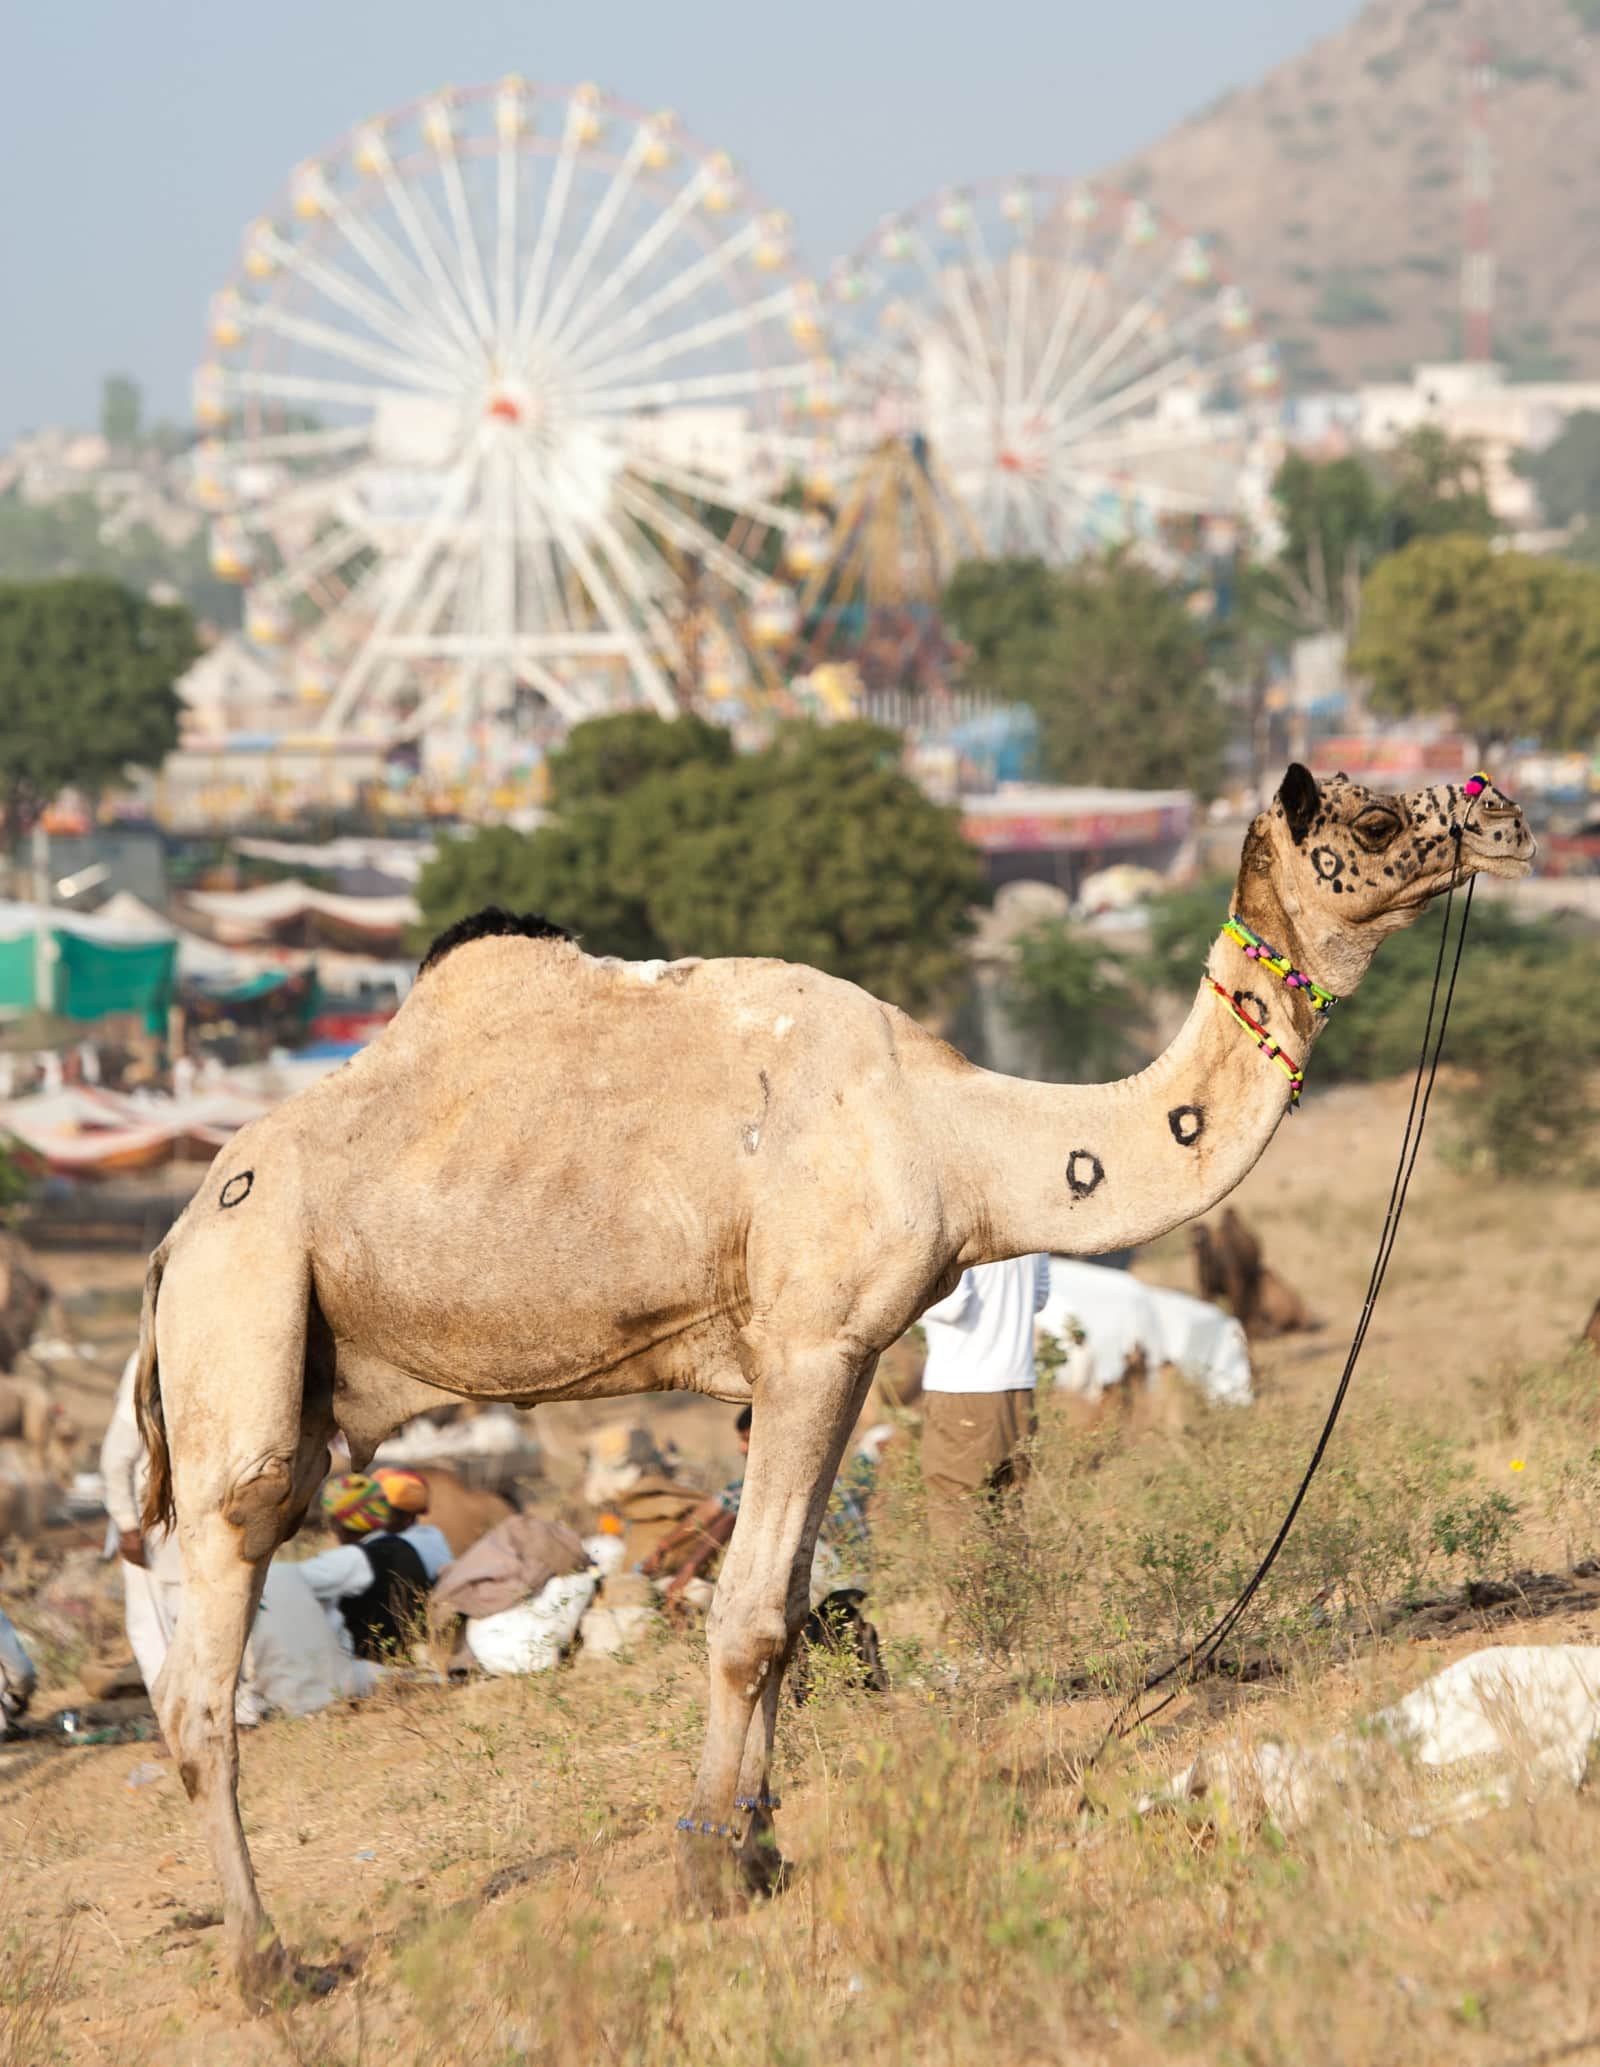 camel-ferris-wheel-camel-pushkar-camel-fair-india-travel-london-freelance-photographer-richard-isaac-3200